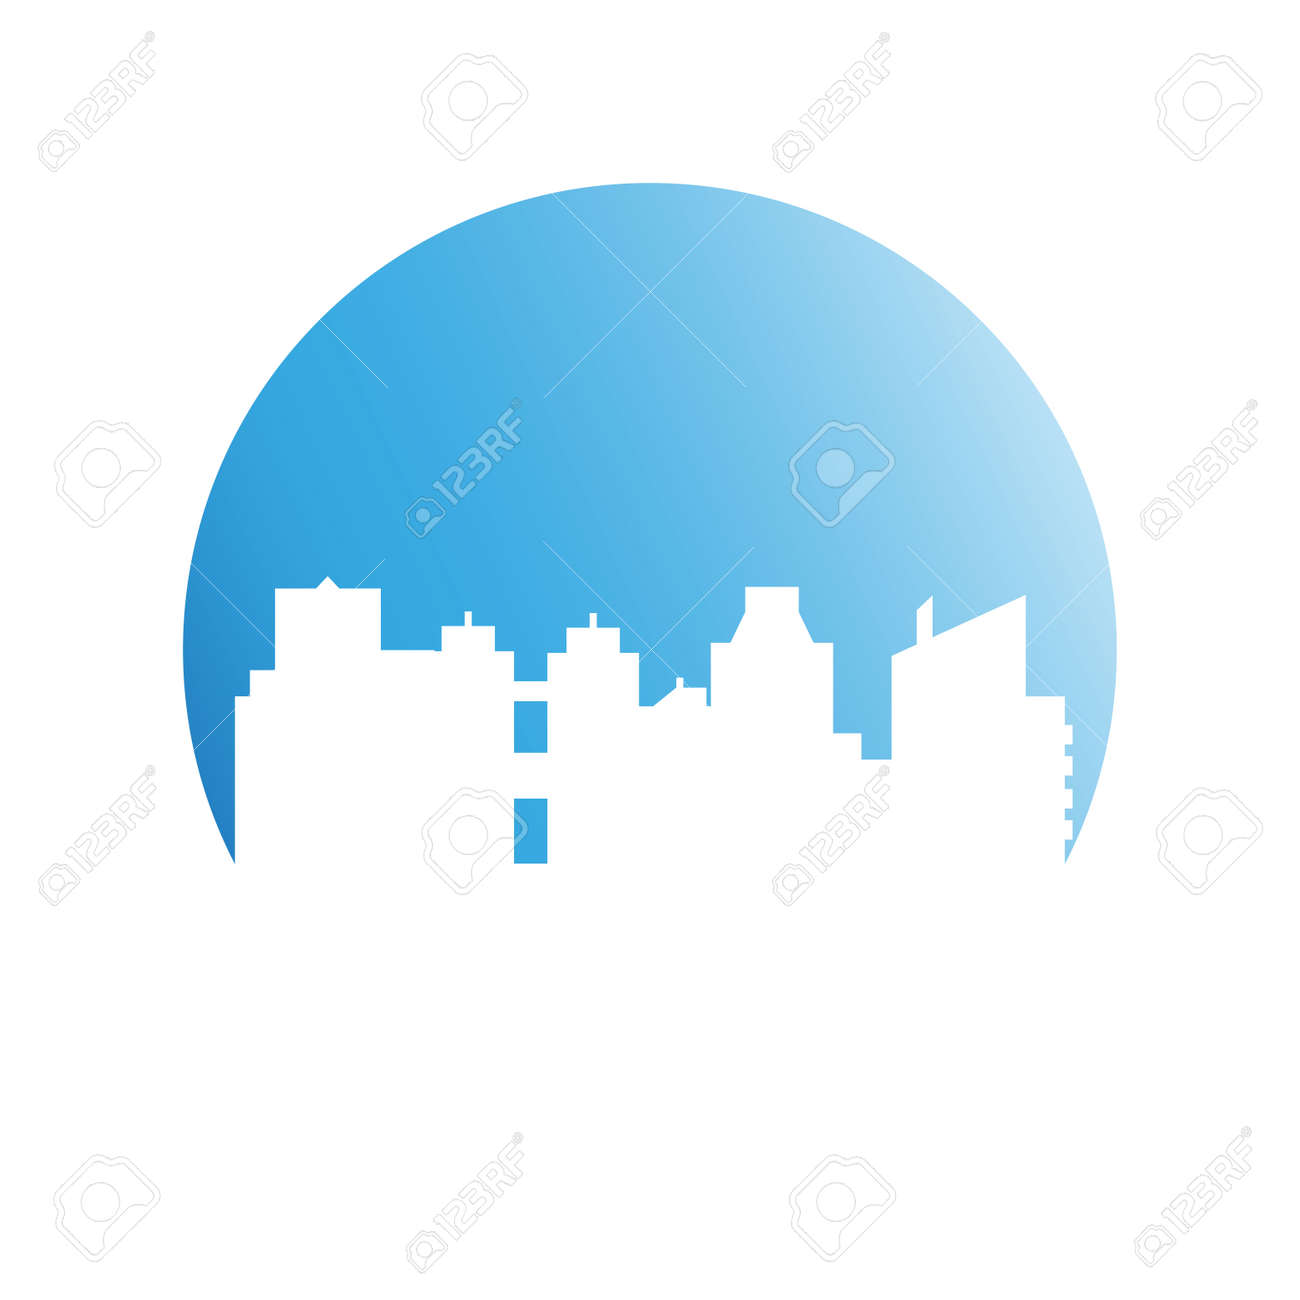 building, city skyline in blue circle - 127014341